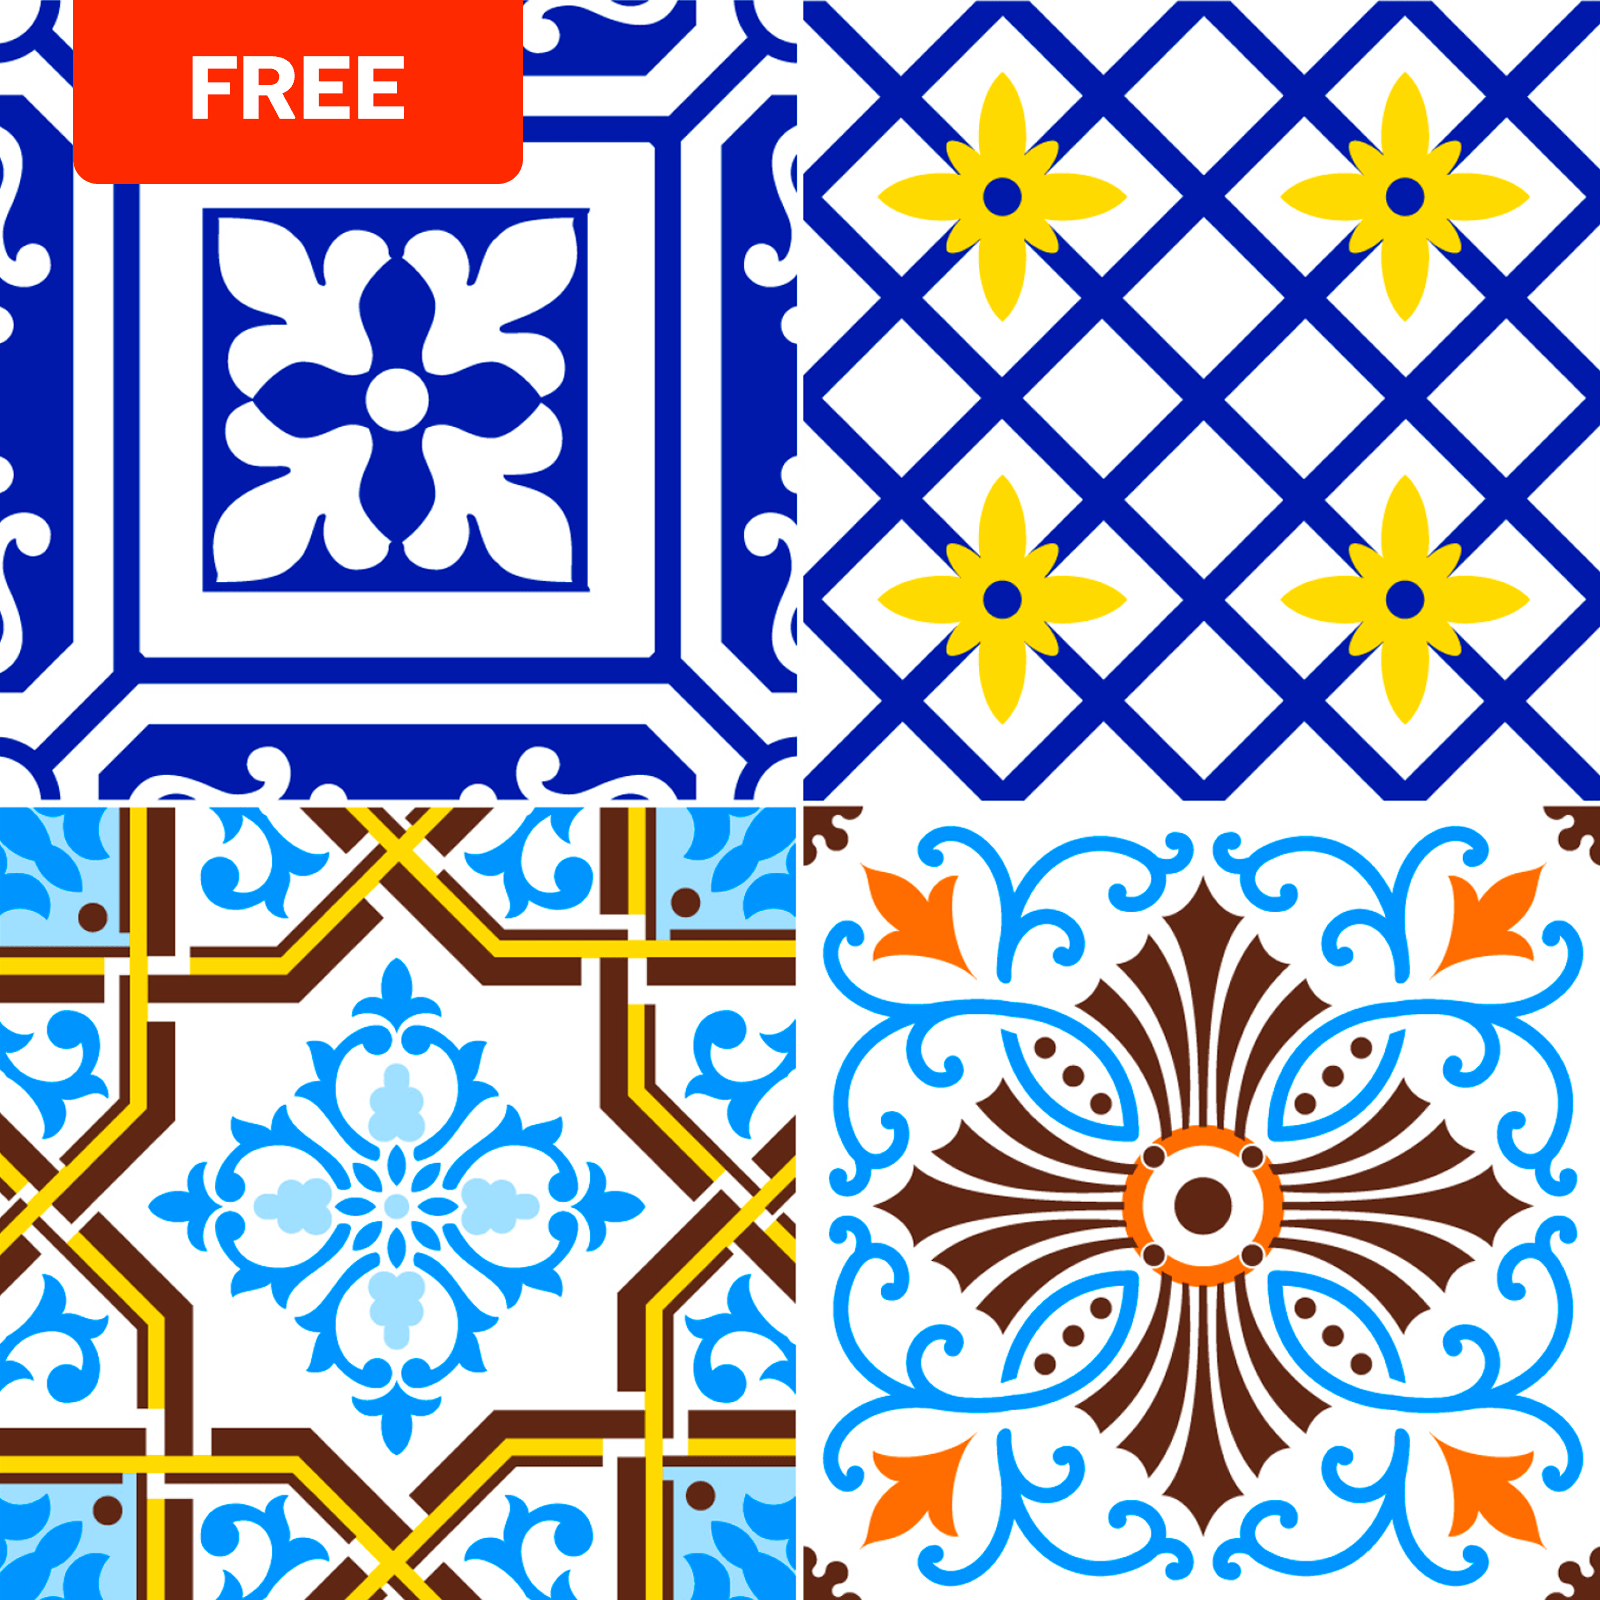 Free E-Book: Patterned Tile Coloring Book